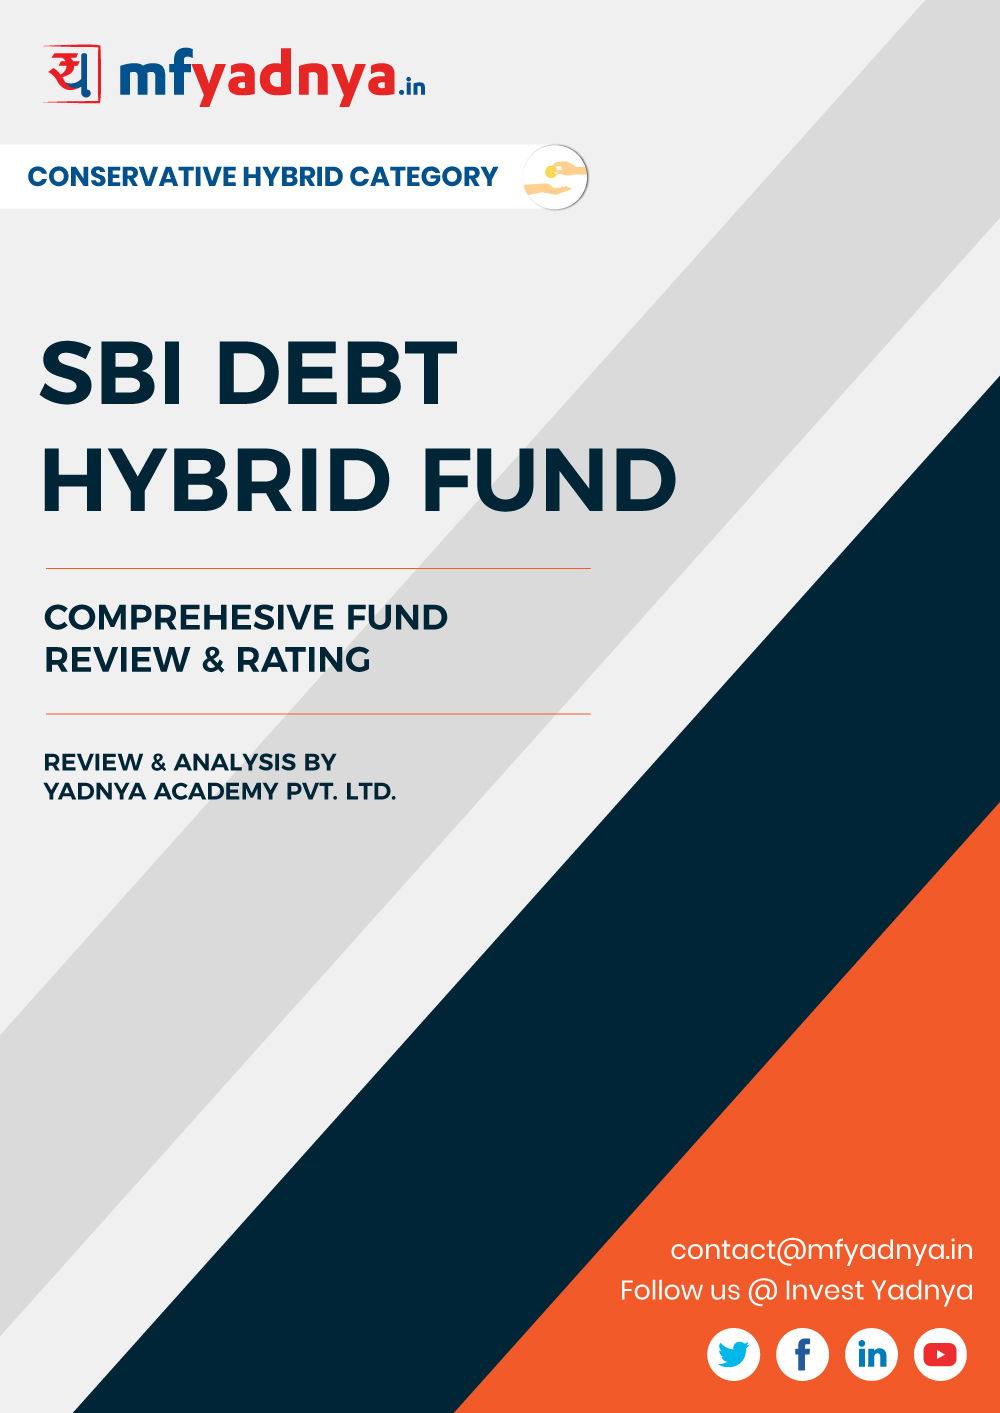 Conservative Hybrid Category Review - SBI Debt Hybrid Fund. Most Comprehensive and detailed MF review based on Yadnya's proprietary methodology of Green, Yellow & Red Star. Detailed Analysis & Review based on March 31st, 2020 data. Review also gives you the historical trend of the performance which will show the fund's performance consistency.